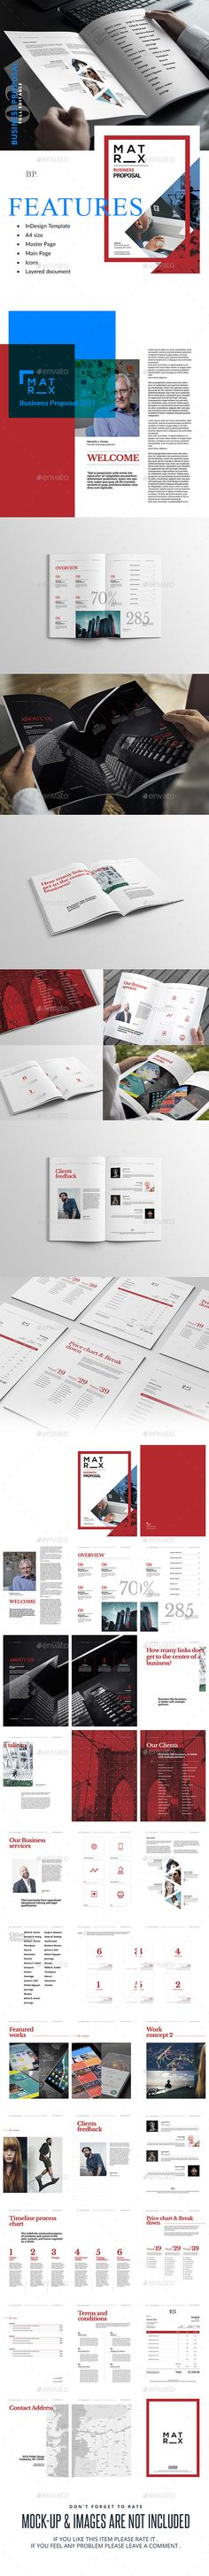 Proposal Proposal templates, Proposals and Font logo - advertising proposal template